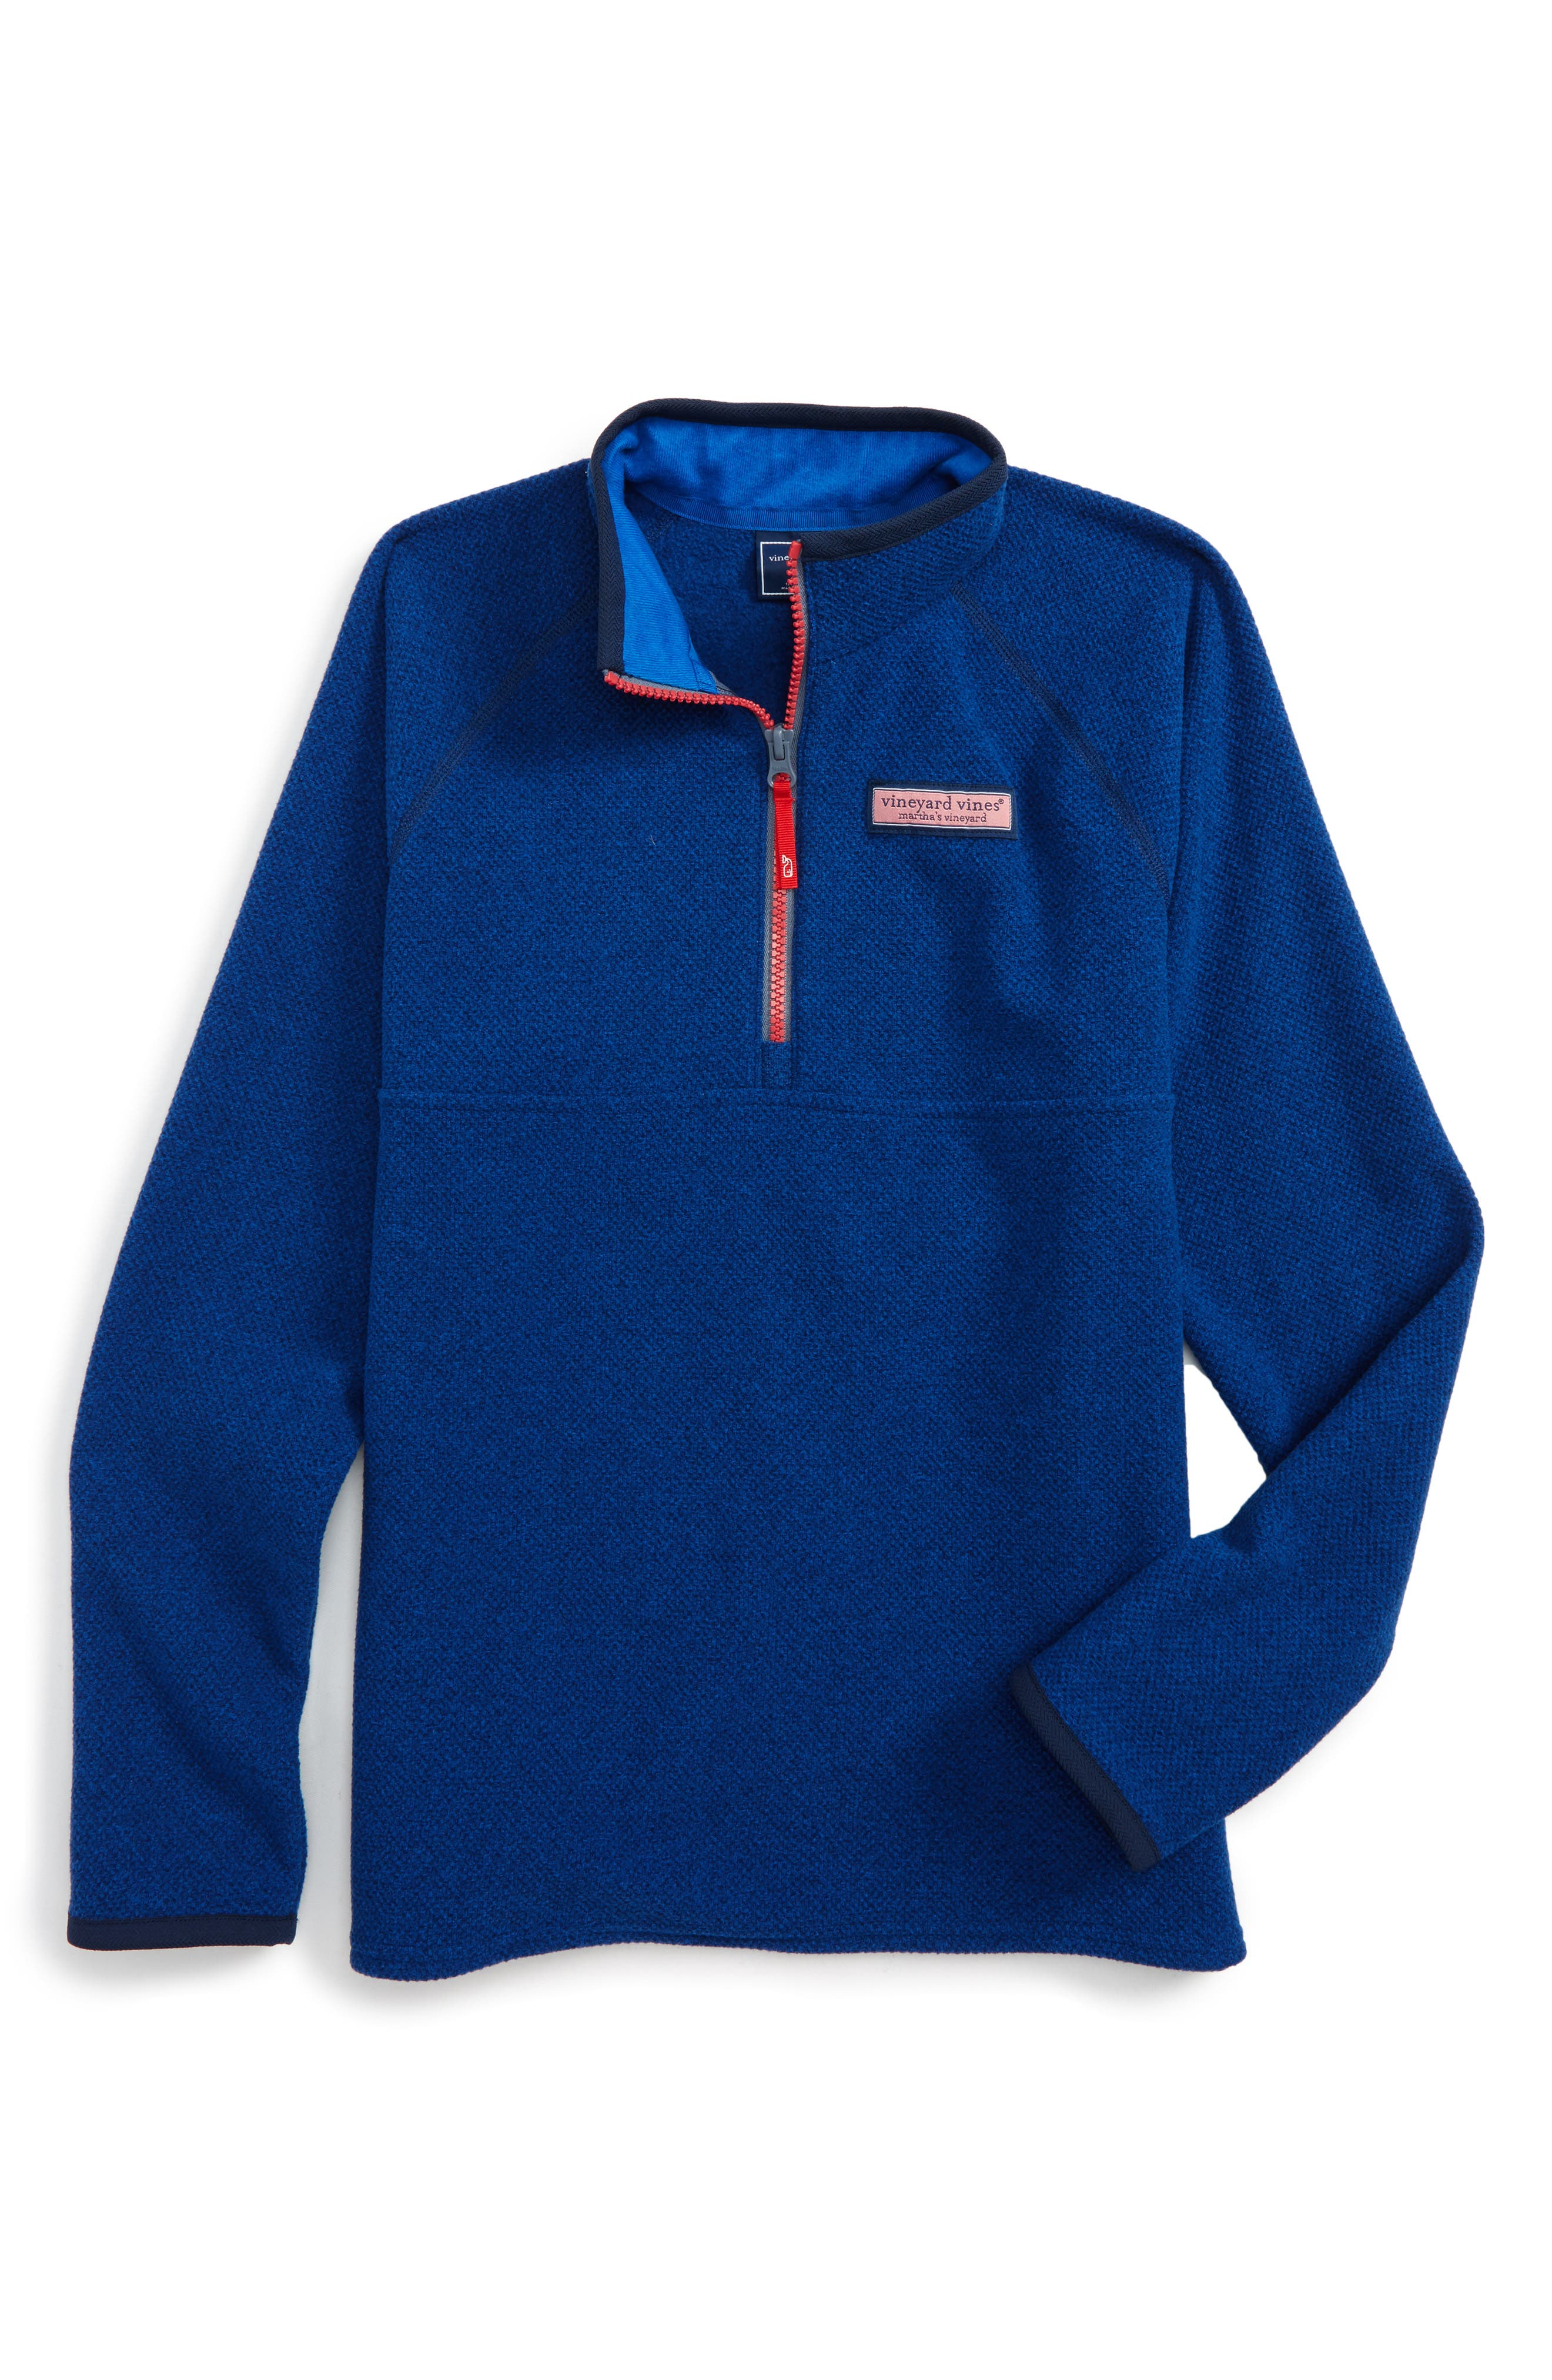 Main Image - vineyard vines Quarter Zip Sweater (Big Boys)